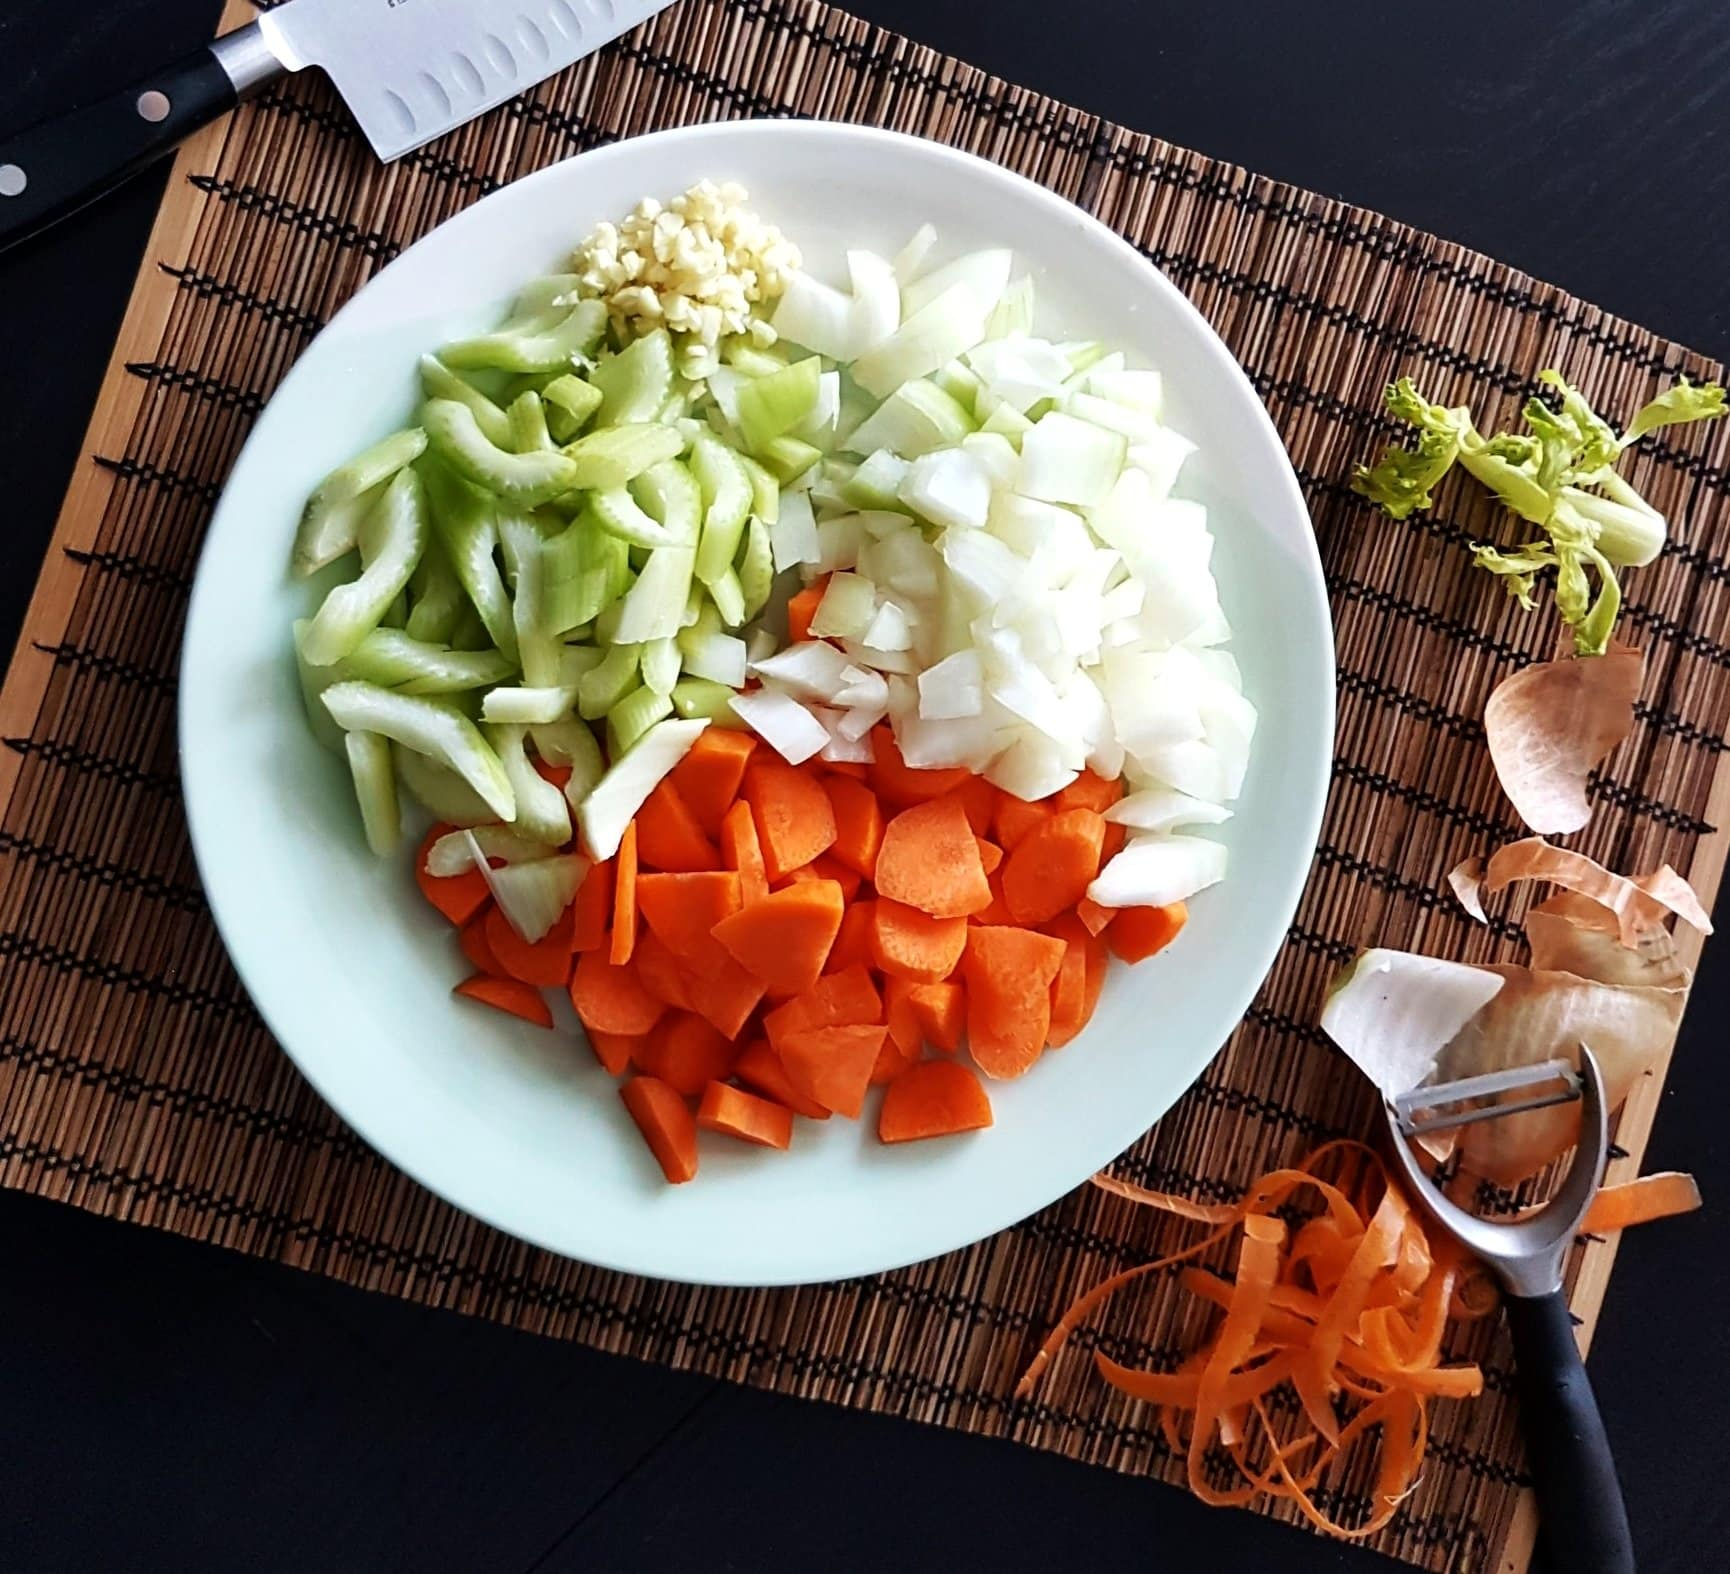 Chopped carrots, celery, onions, and garlic.